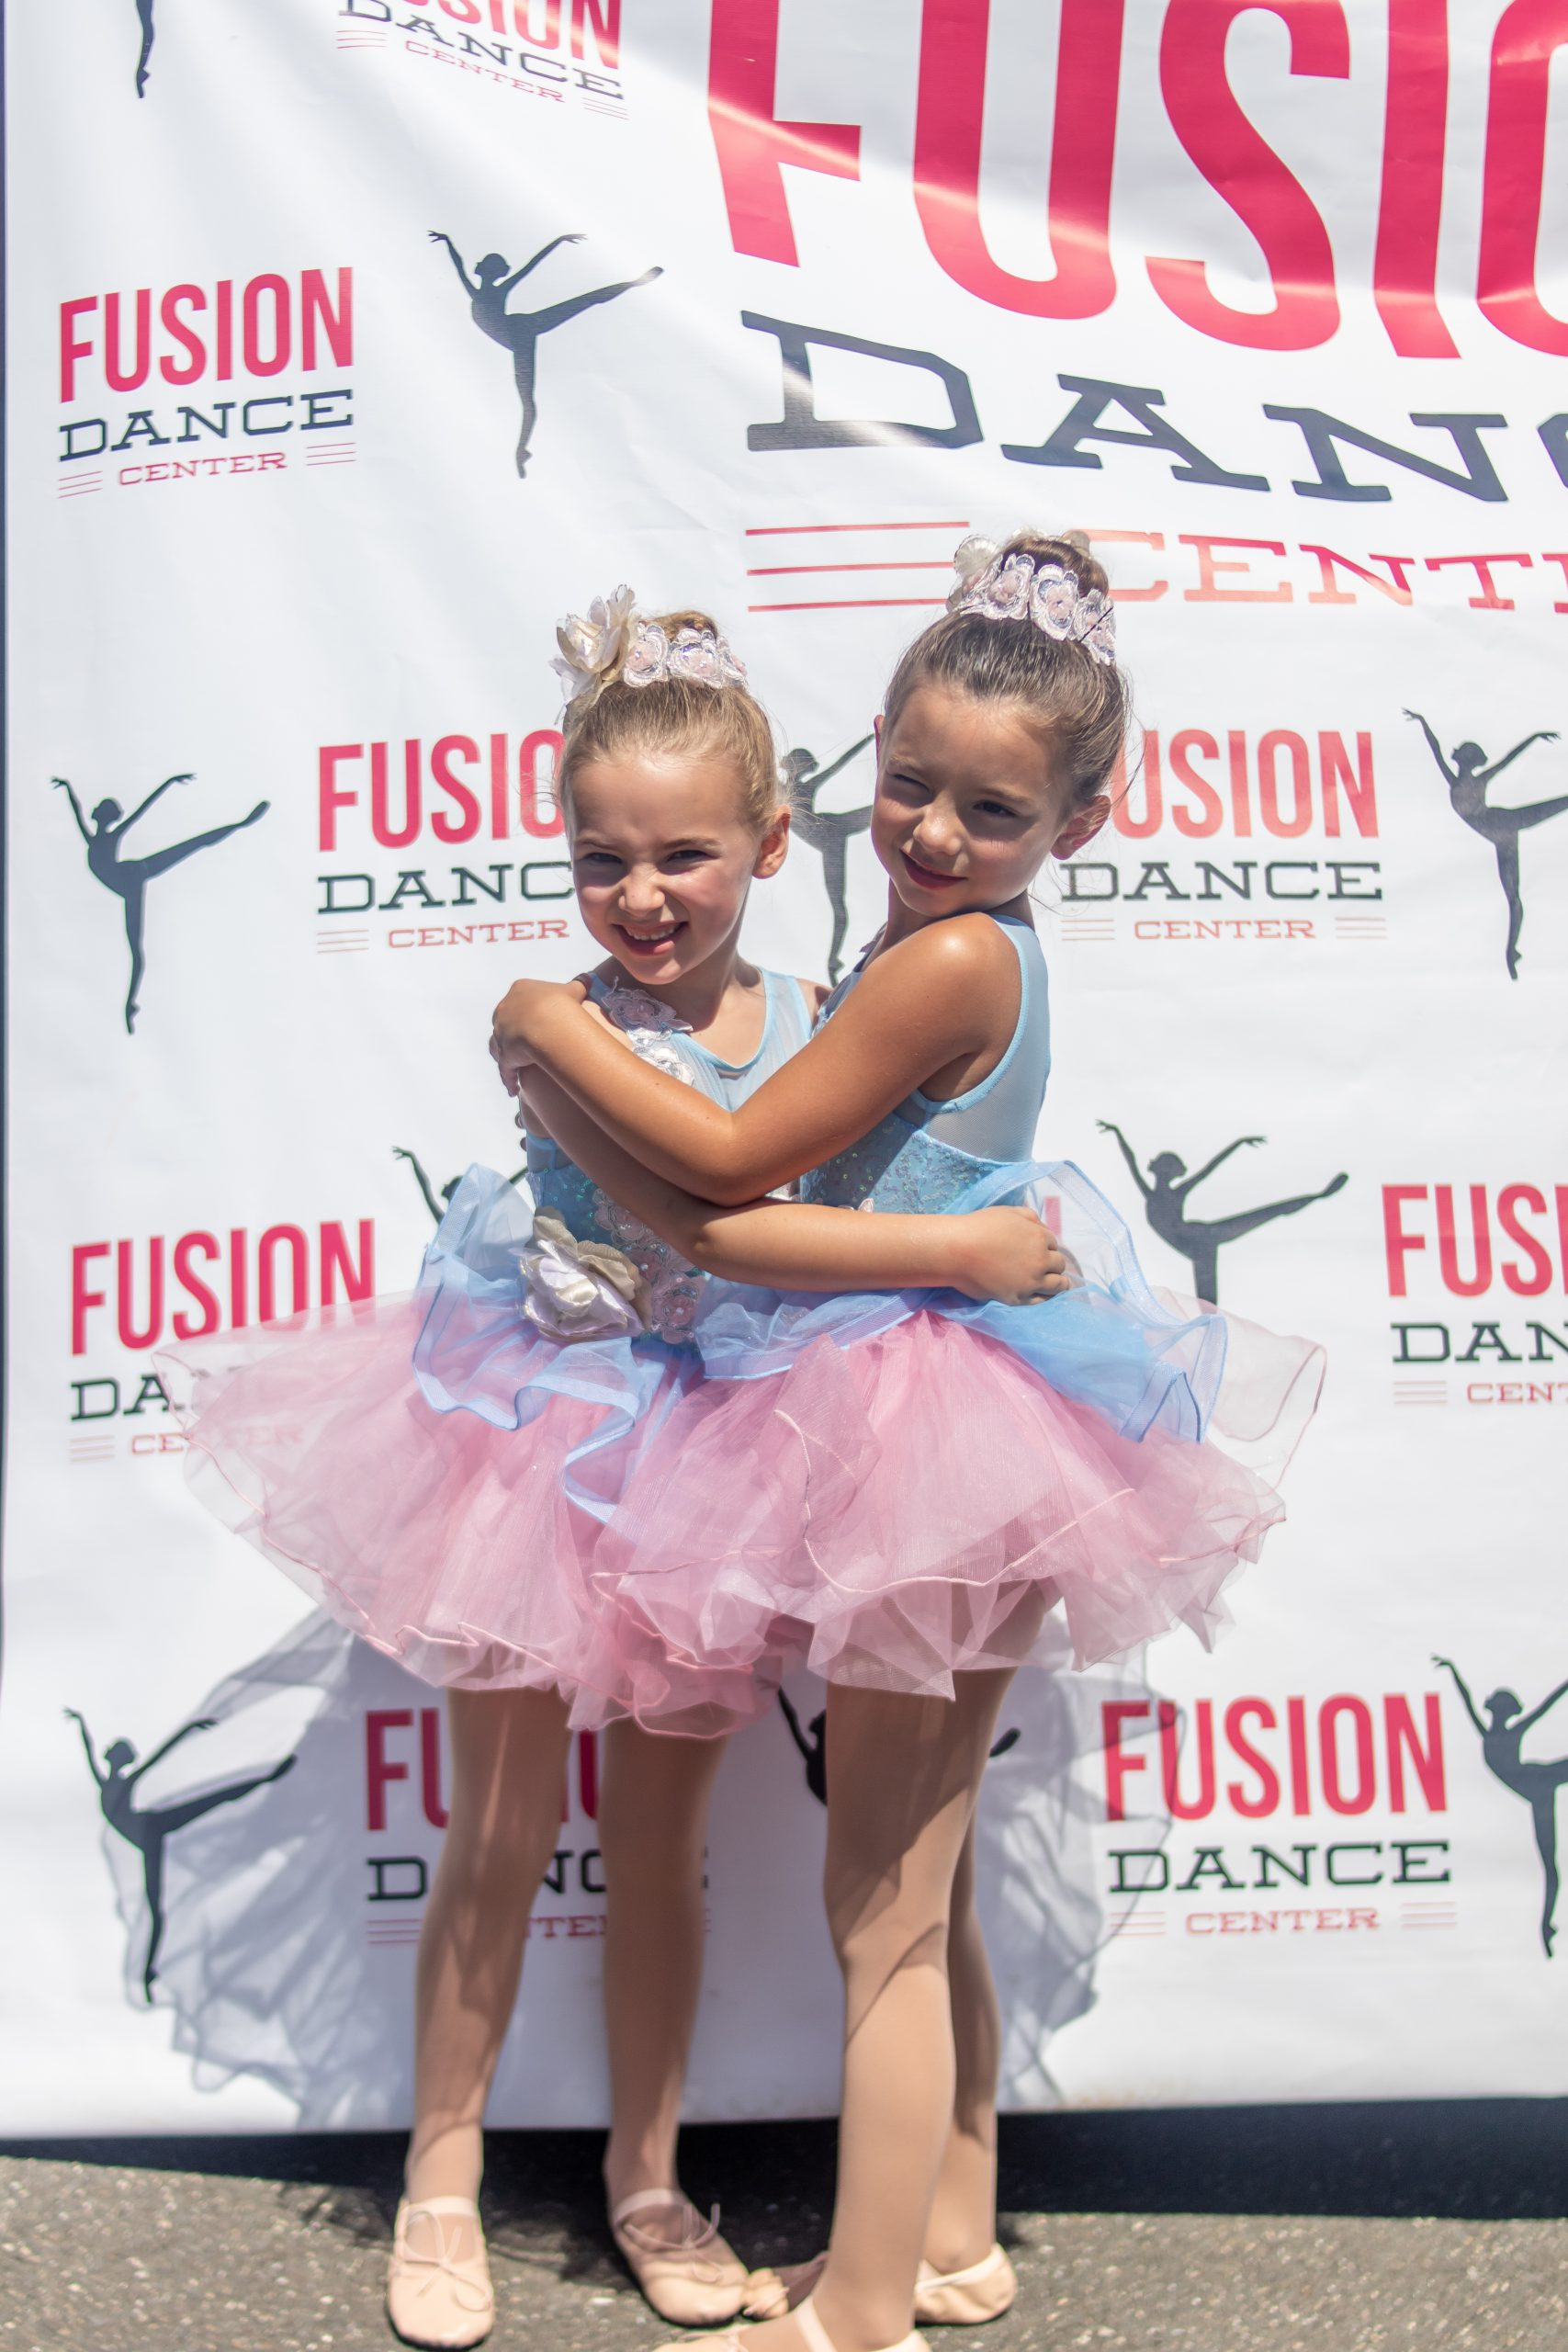 cousins in pink and blue ballet costumes